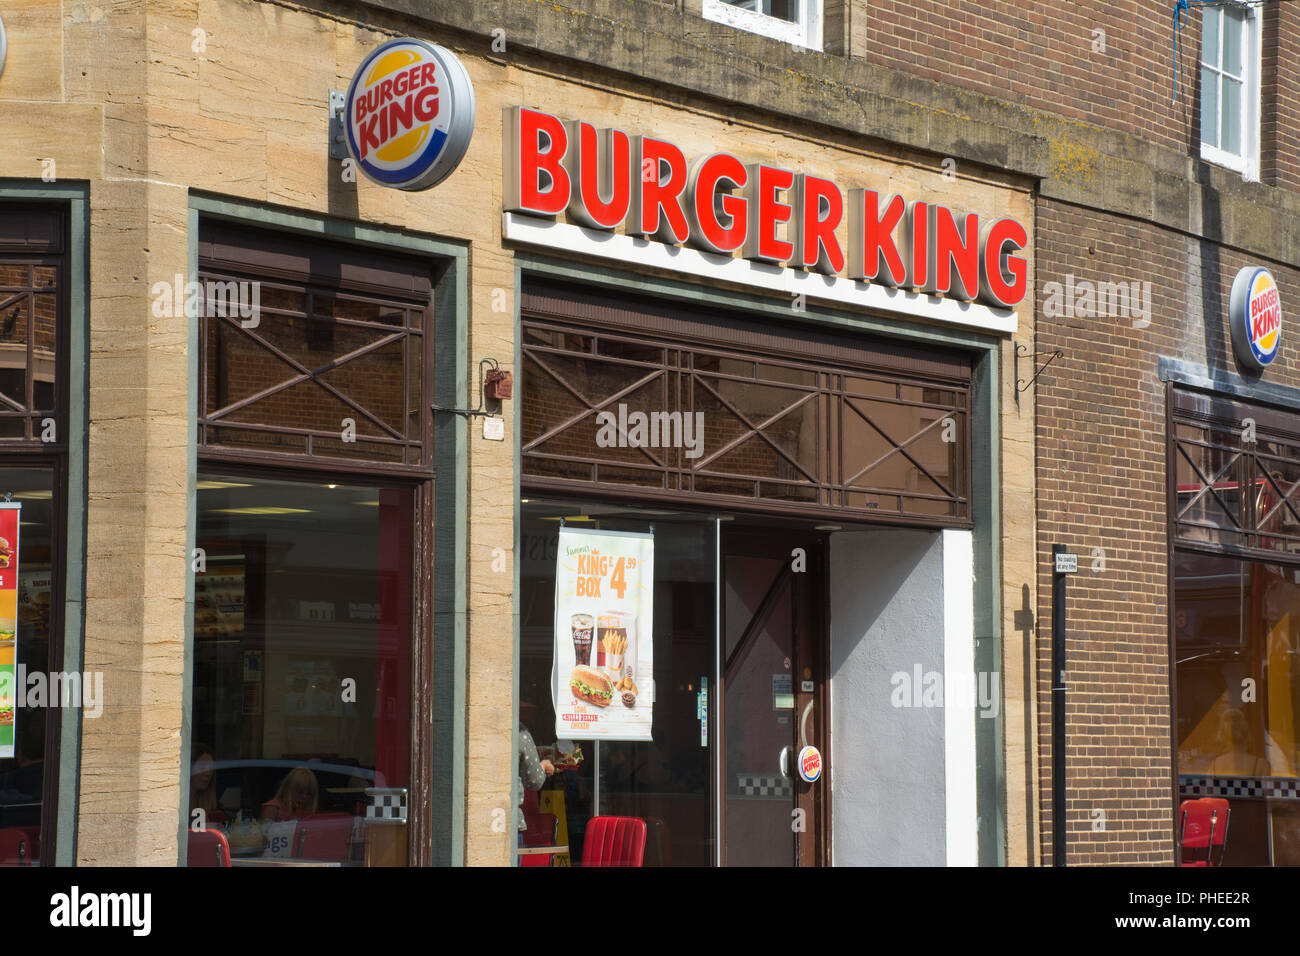 City Centre Burger King High Resolution Stock Photography And Images Alamy